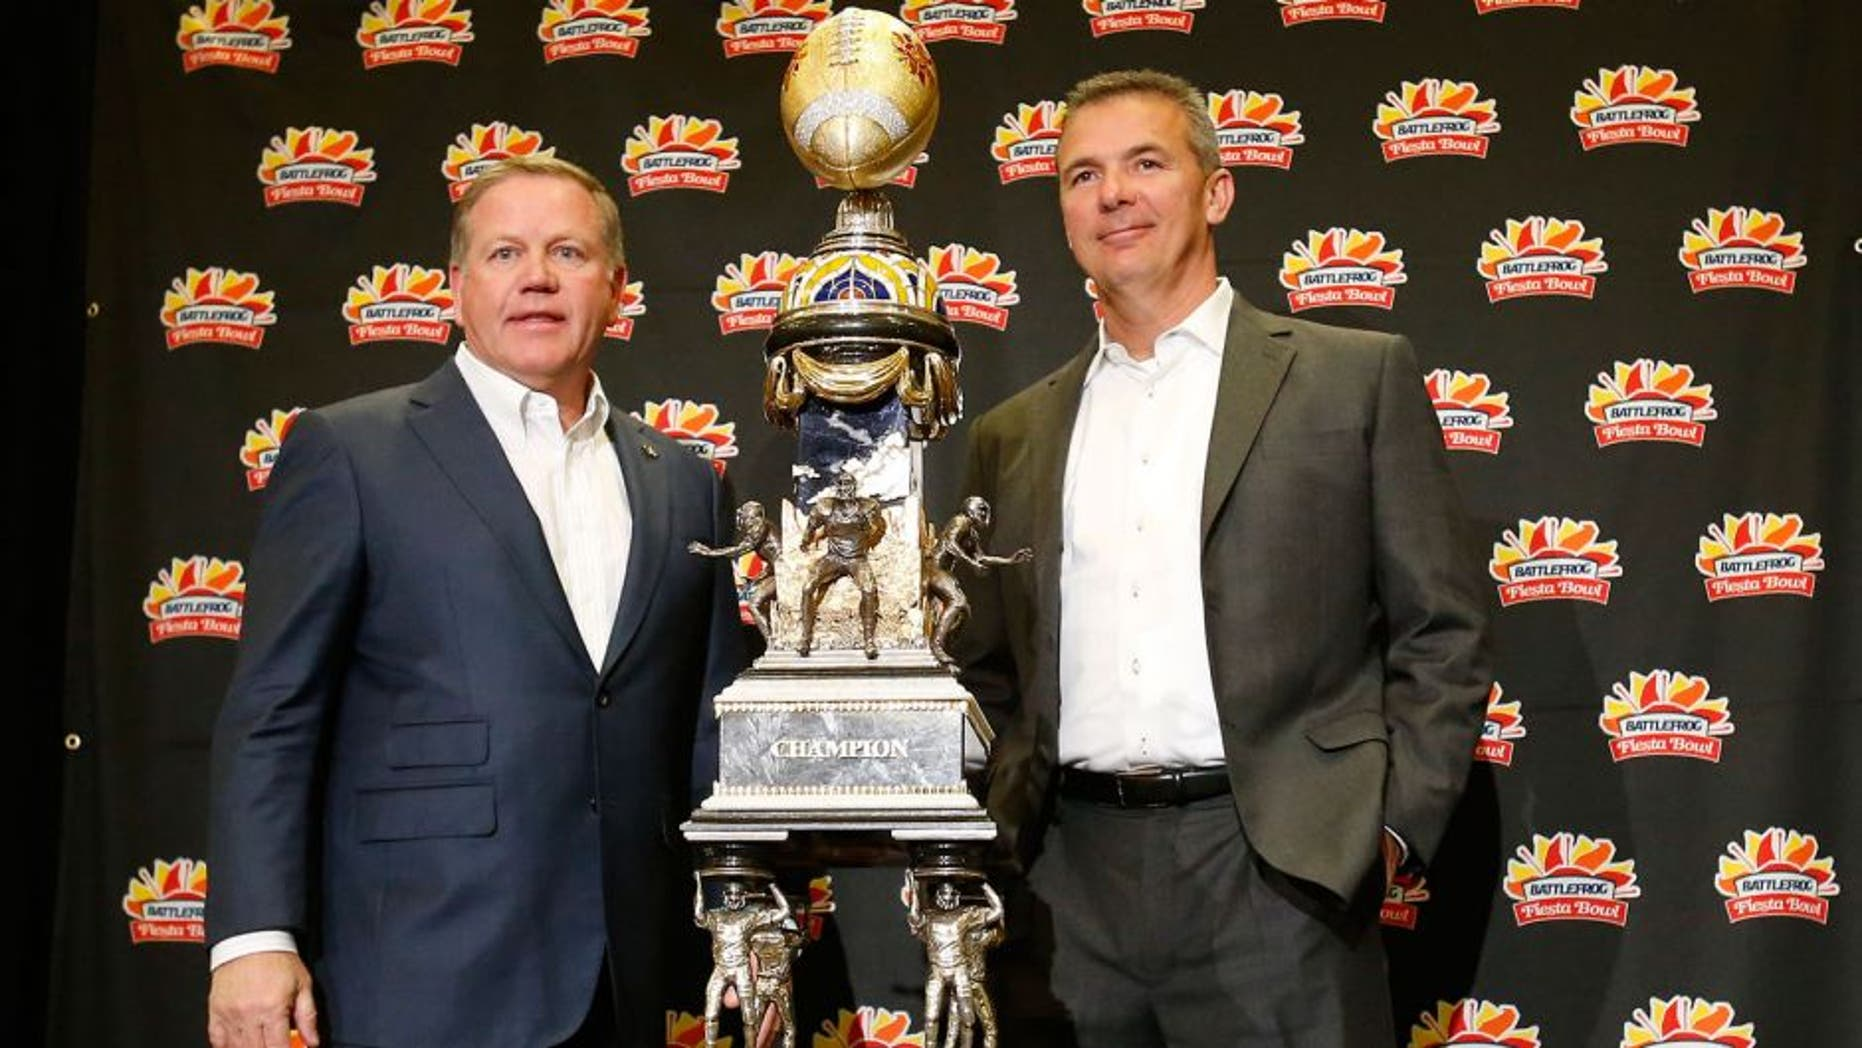 Notre Dame head coach Brian Kelly, left, and Ohio State head coach Urban Meyer pose with the trophy during a news conference for the Fiesta Bowl NCAA college football game, Thursday, Dec. 31, 2015, in Scottsdale, Ariz. Notre Dame plays Ohio State on New Year's Day. (AP Photo/Rick Scuteri)